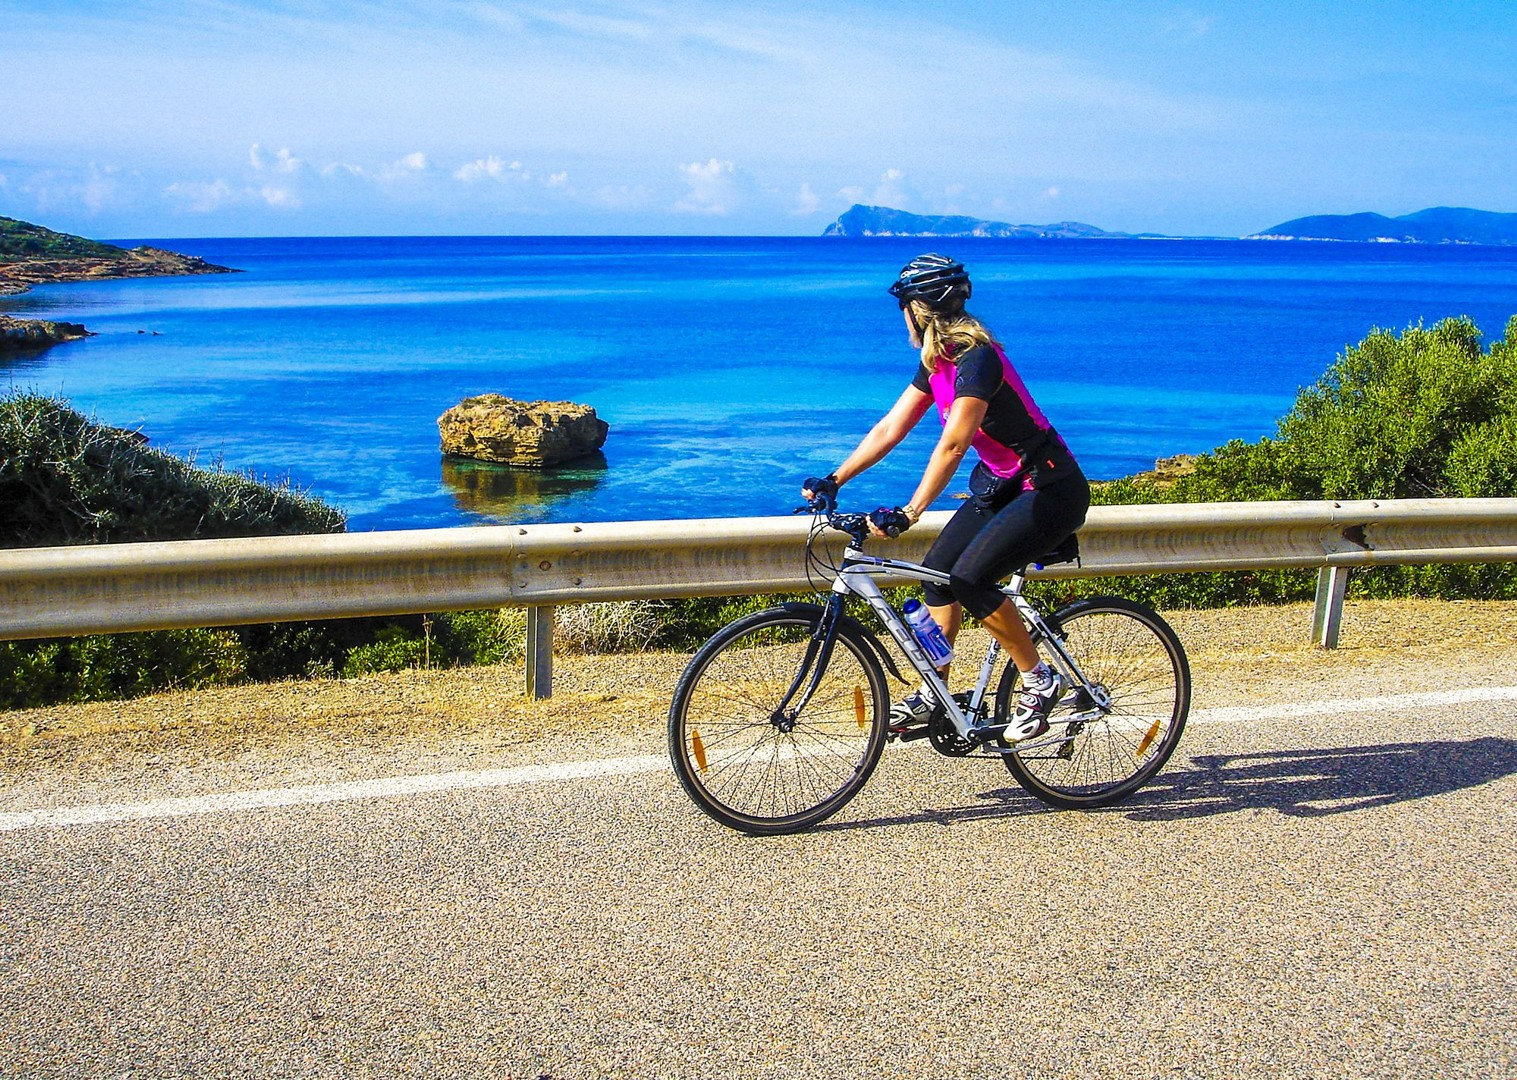 saddle-skedaddle-leisure-cycling-self-guided-sardinia.jpg - Italy - Sardinia - Island Flavours - Self-Guided Leisure Cycling Holiday - Italia Leisure and Family Cycling